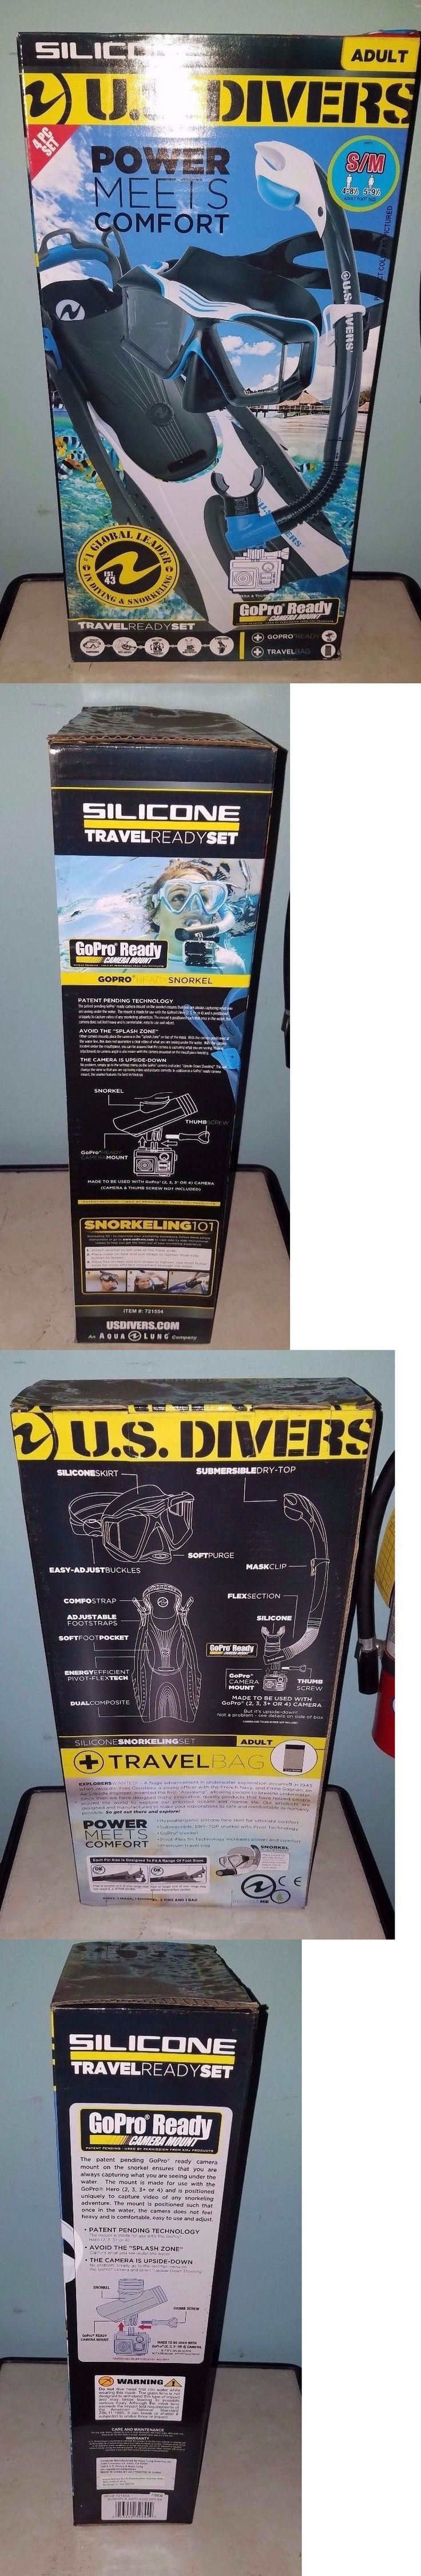 Snorkels and Sets 71162: U.S. Divers Gopro Ready 4Pc Snorkel Set, Adult Small, Blue, Black, White, Nib -> BUY IT NOW ONLY: $30 on eBay!